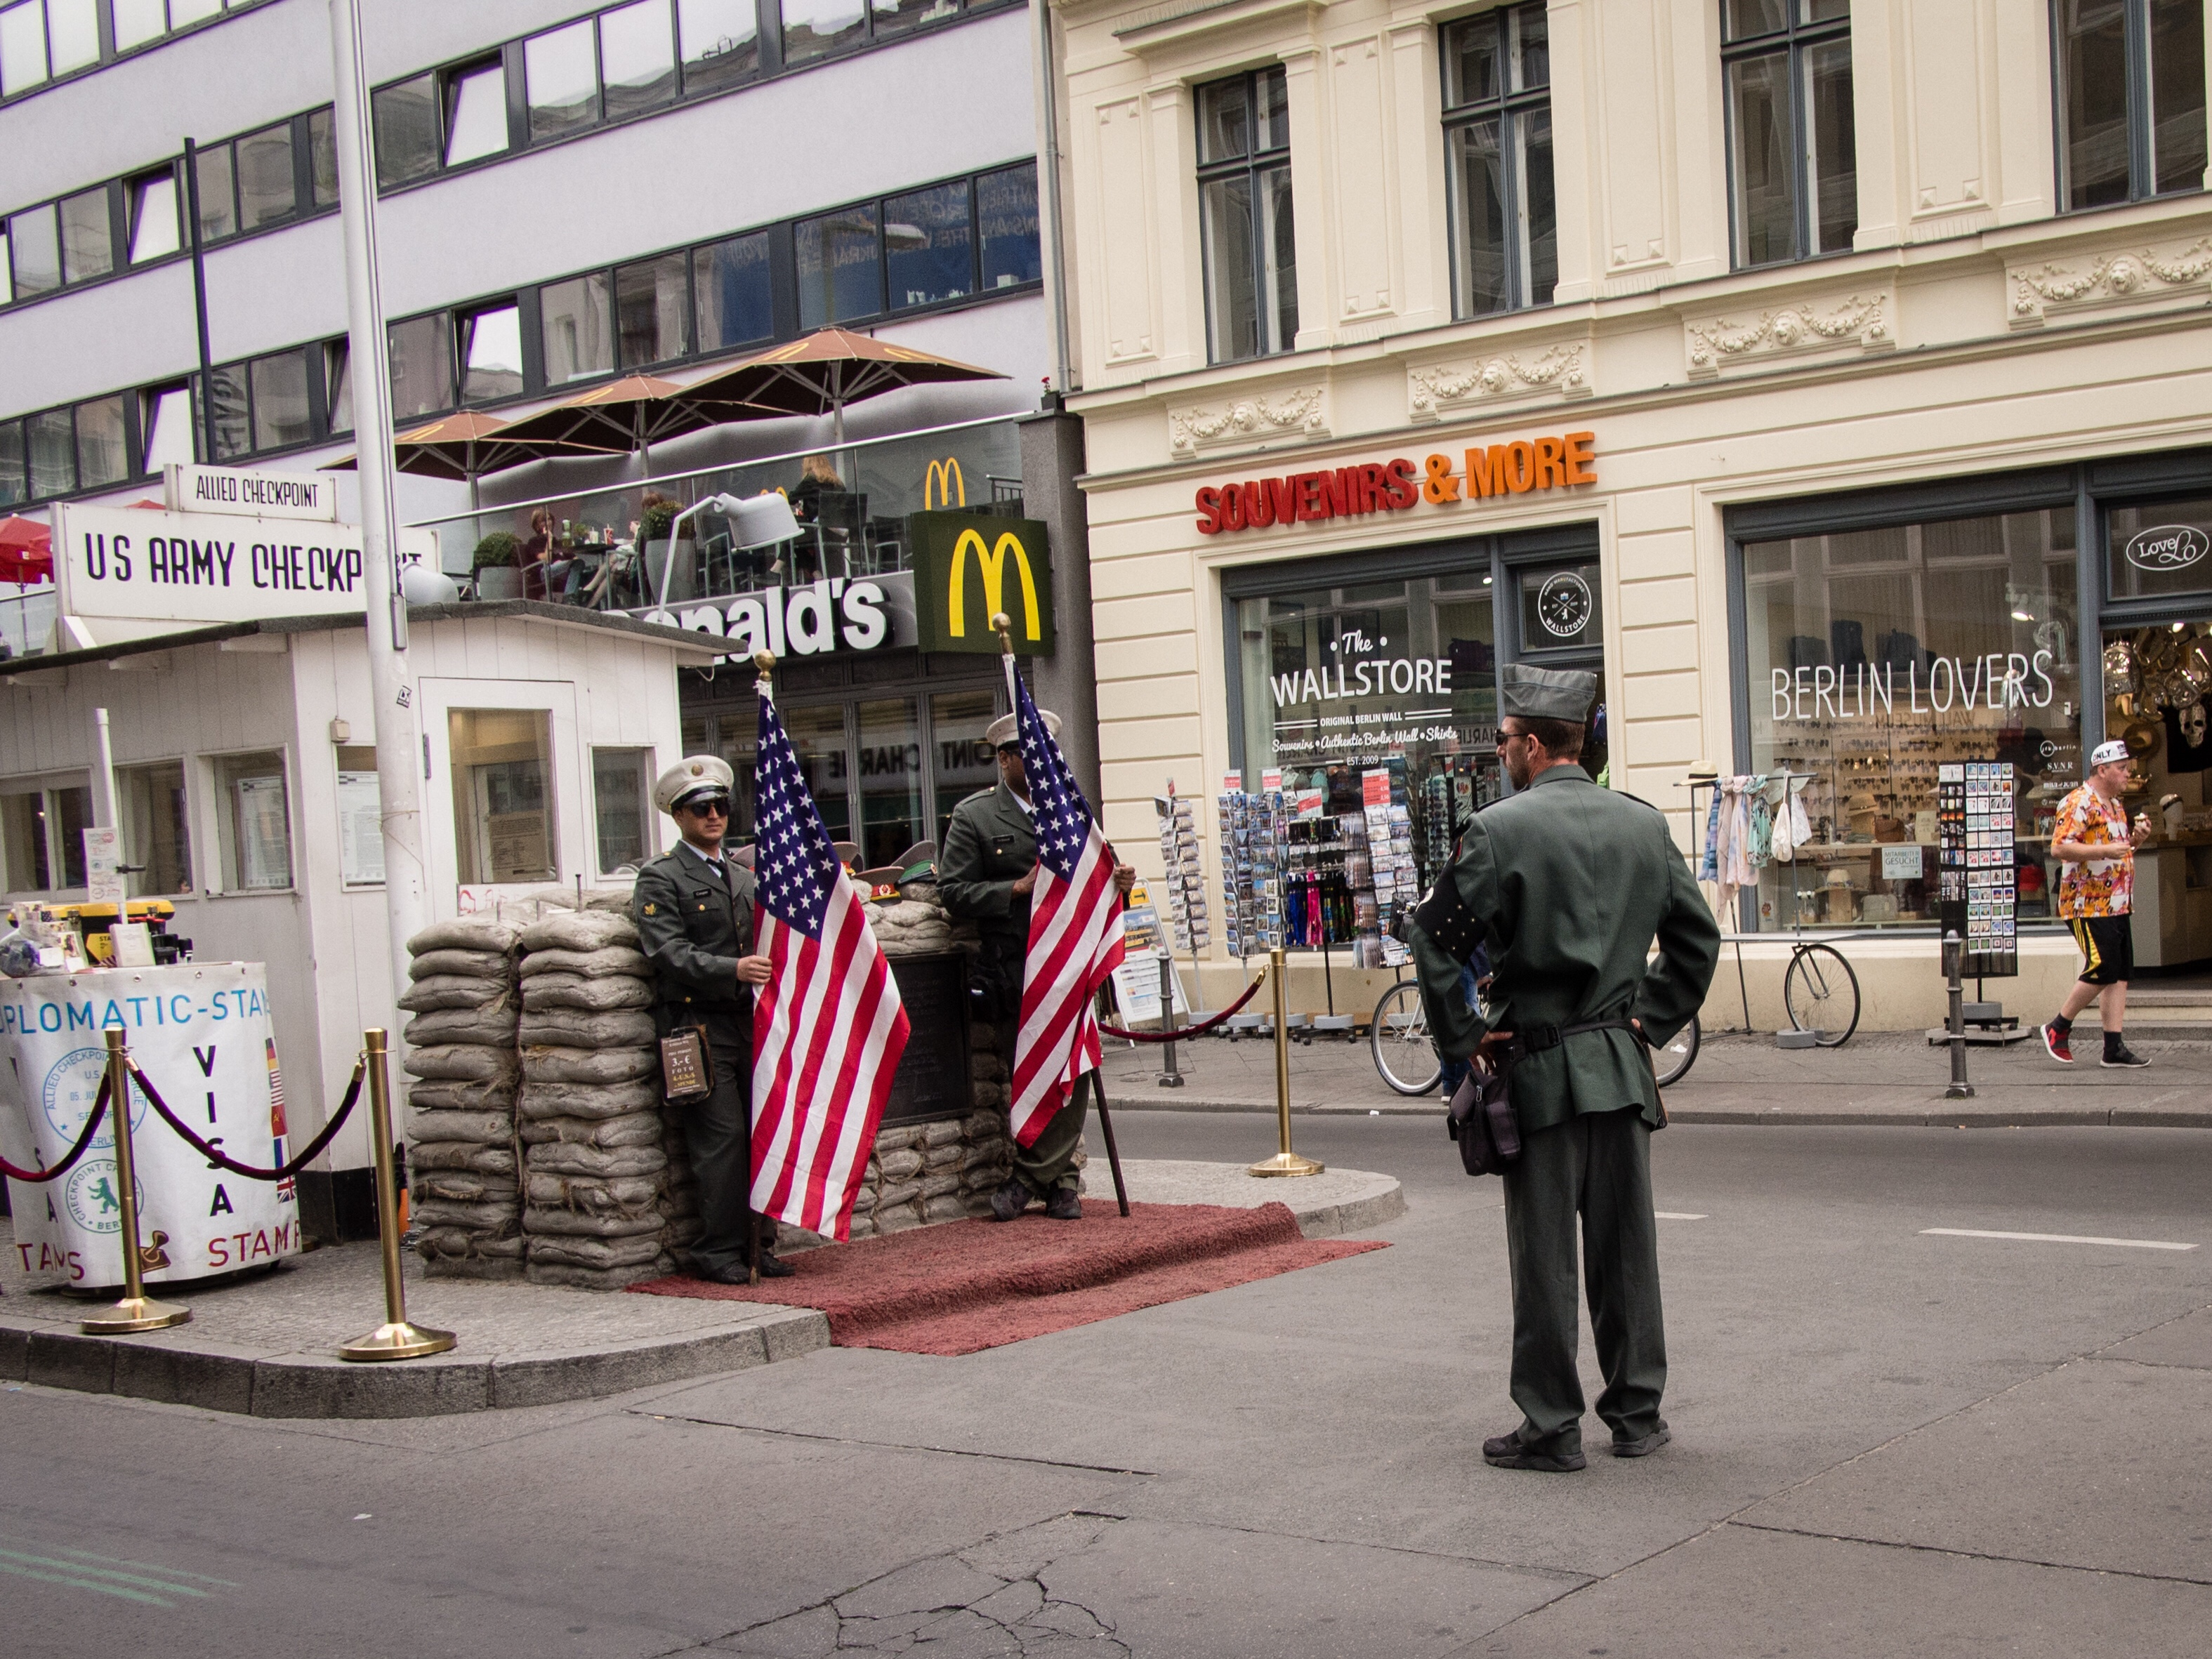 Checkpoint Charlie, Berlin, July 2018